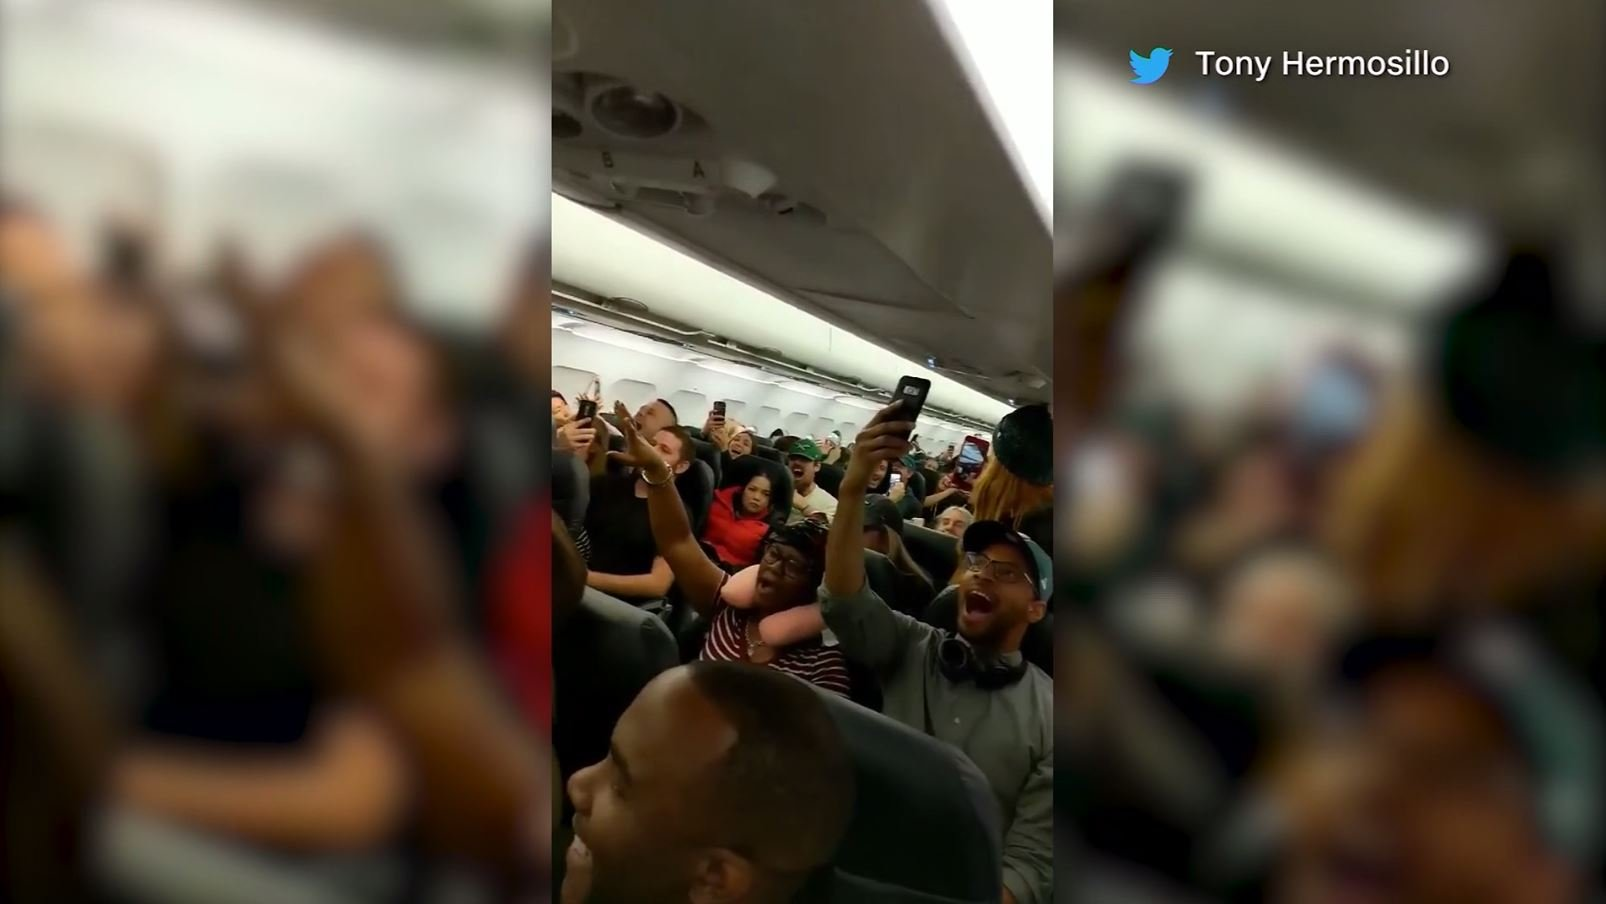 Cellphone videos captured planes full of Eagles fans belting out the team's fight song. (Source: CNN/Tony Hermosillo/Twitter, Katie Wilusz/Twitter)